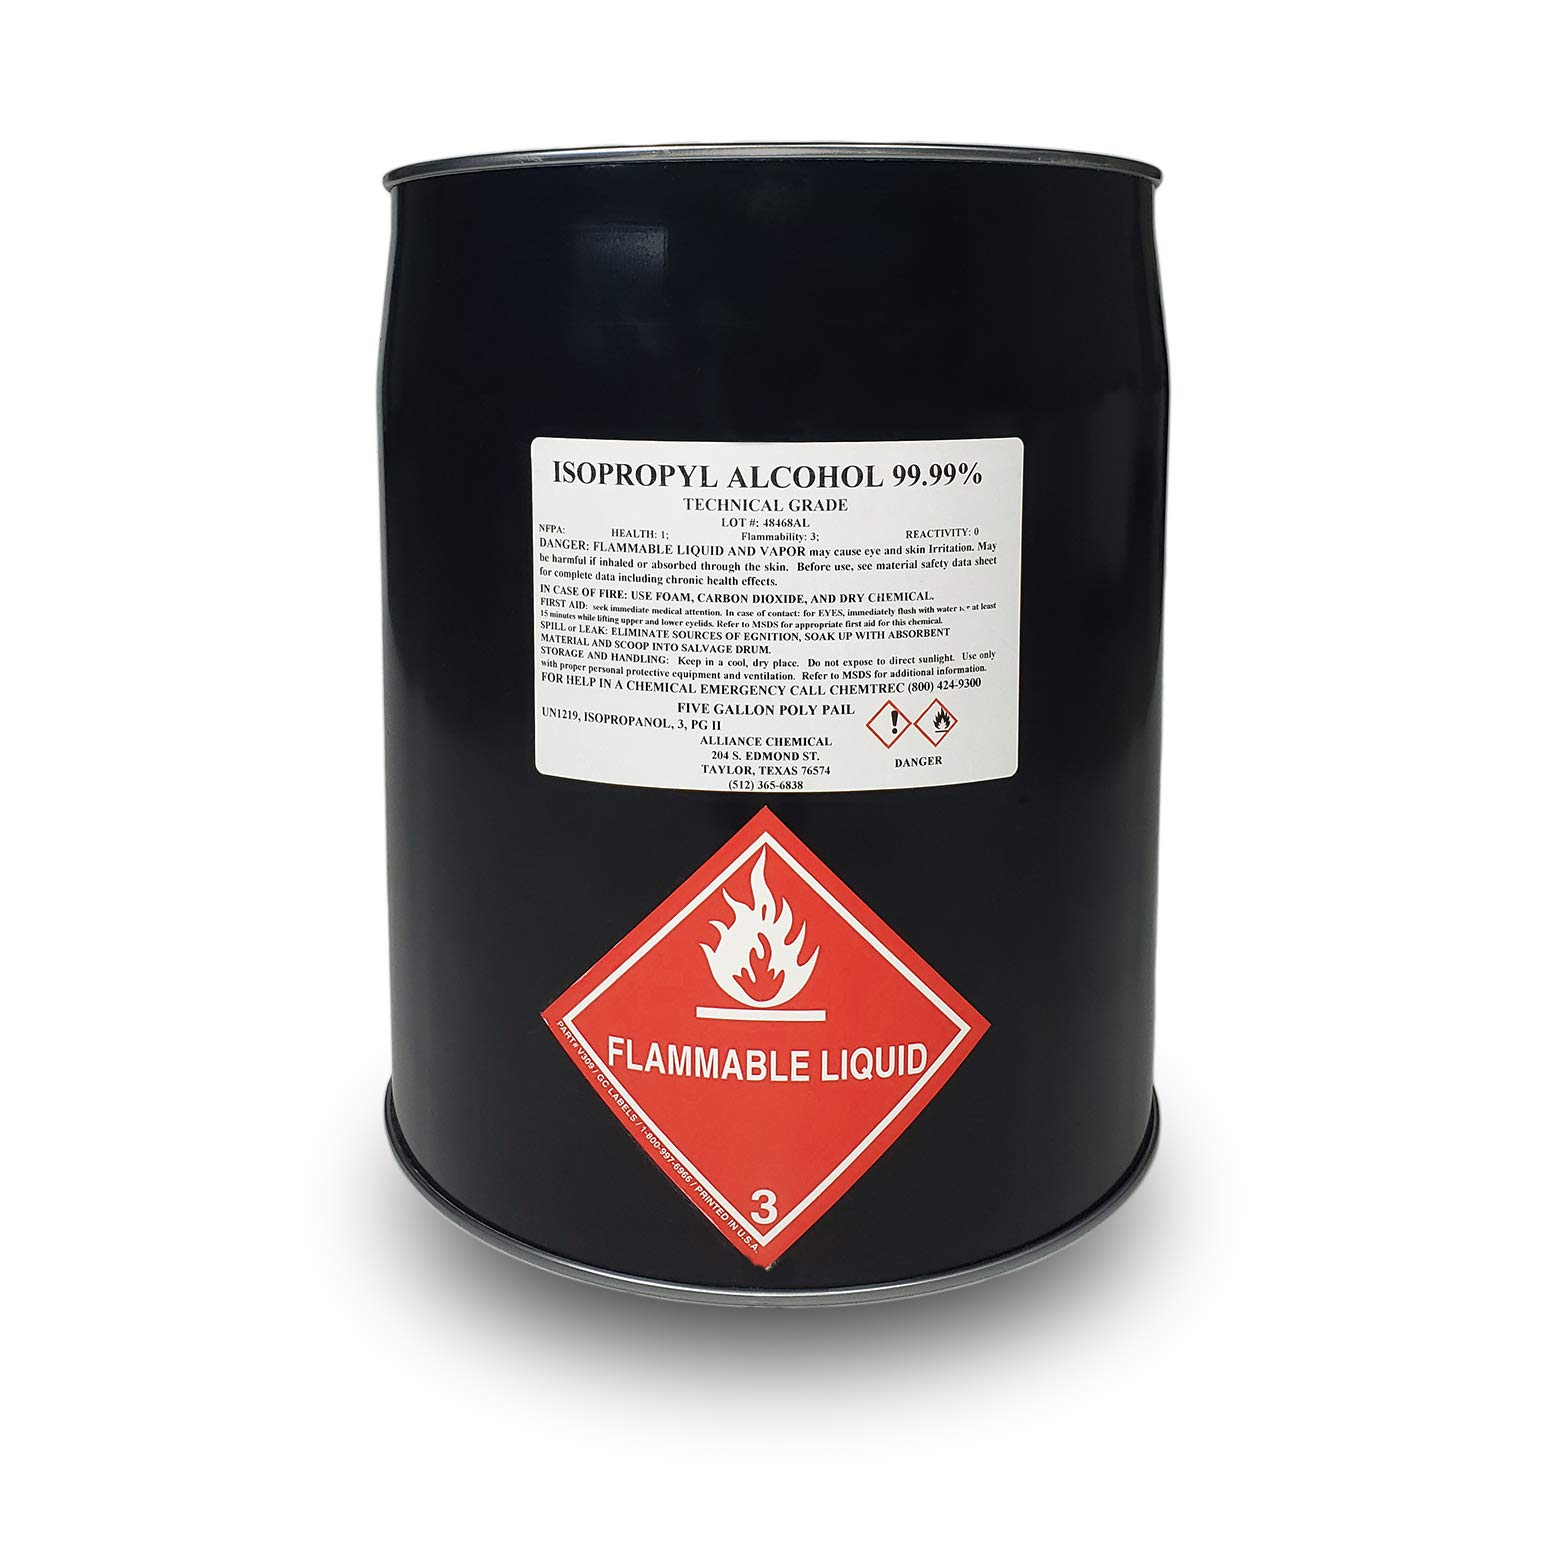 Isopropyl Alcohol 99.99% Technical Grade, 5 Gallon Pail by Alliance Chemical